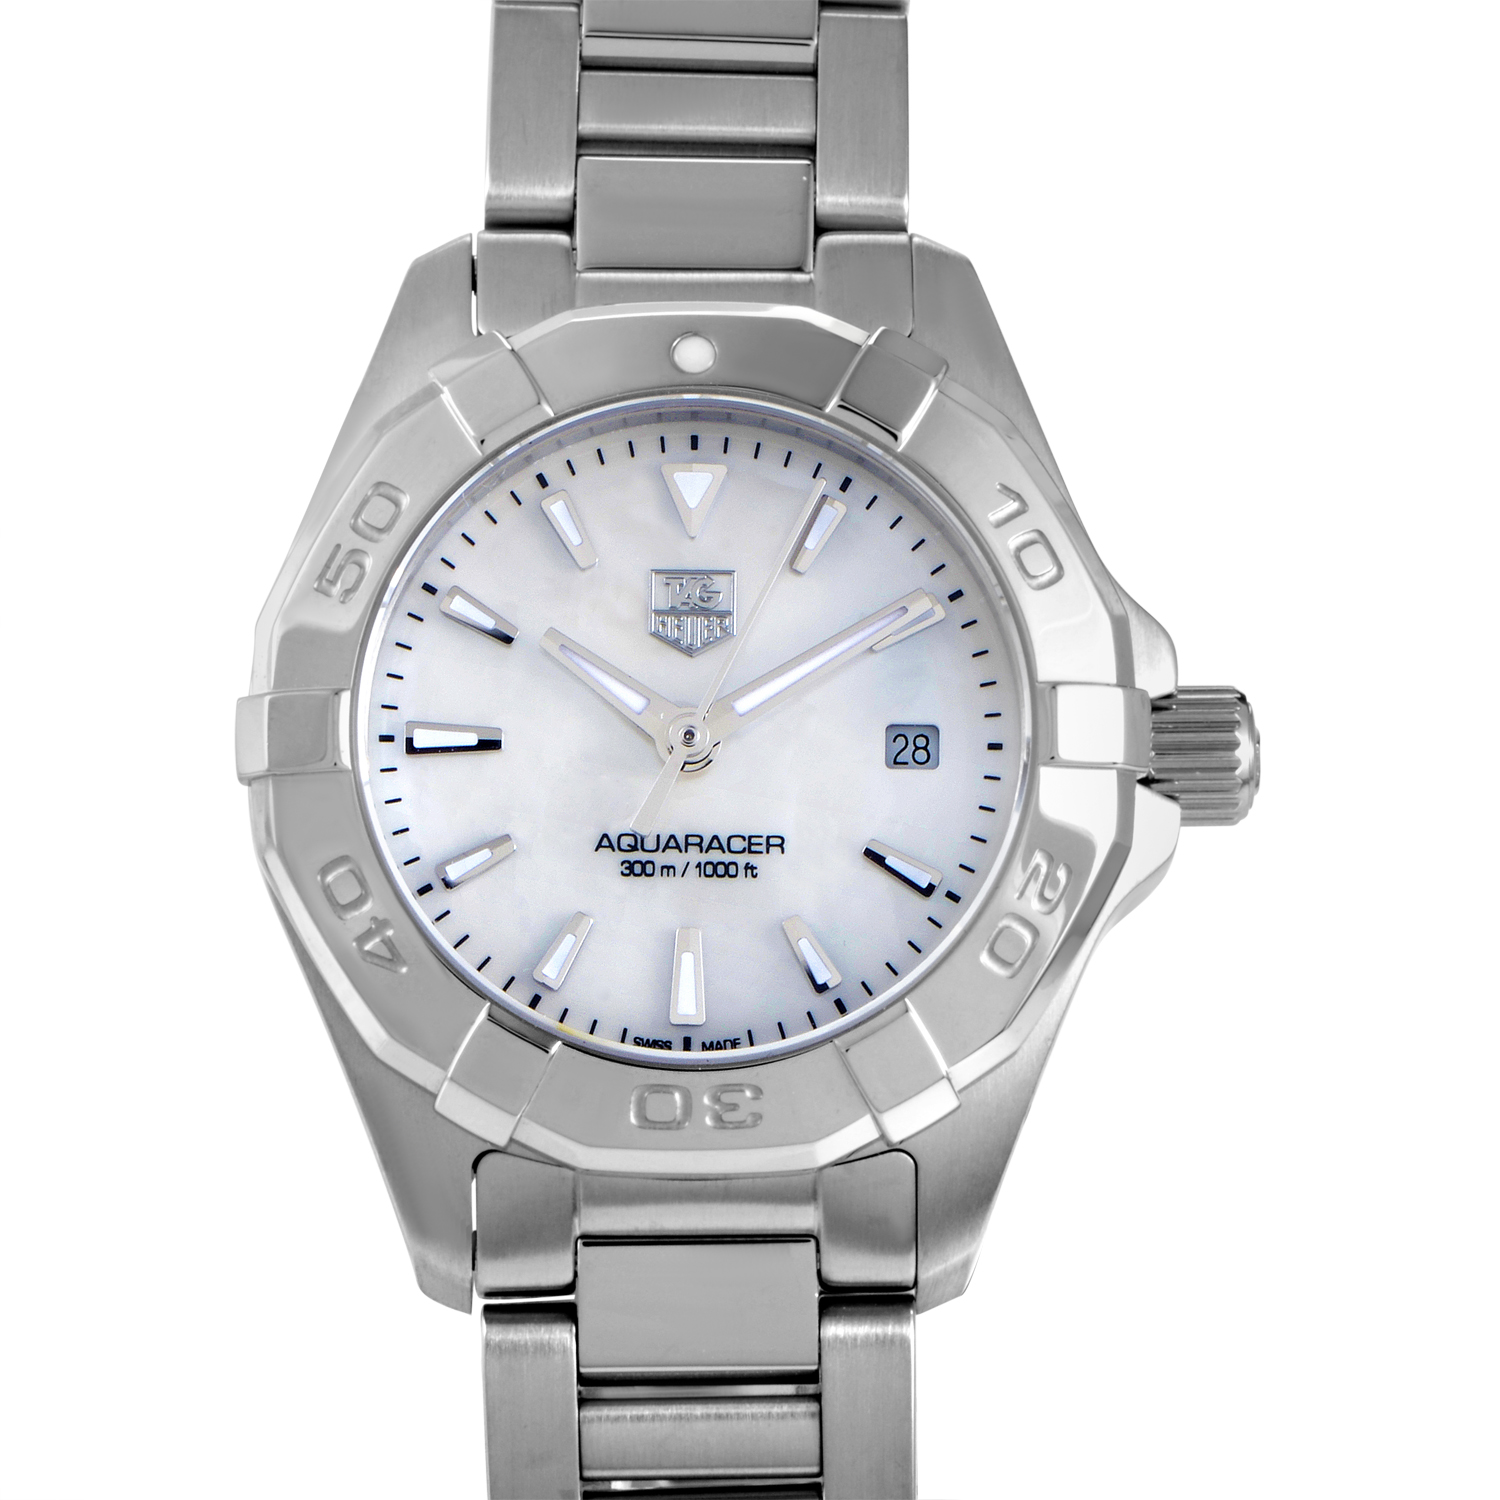 Tag heuer aquaracer ladies 300m stainless steel quartz watch way1412 ba0920 ebay for Tag heuer women